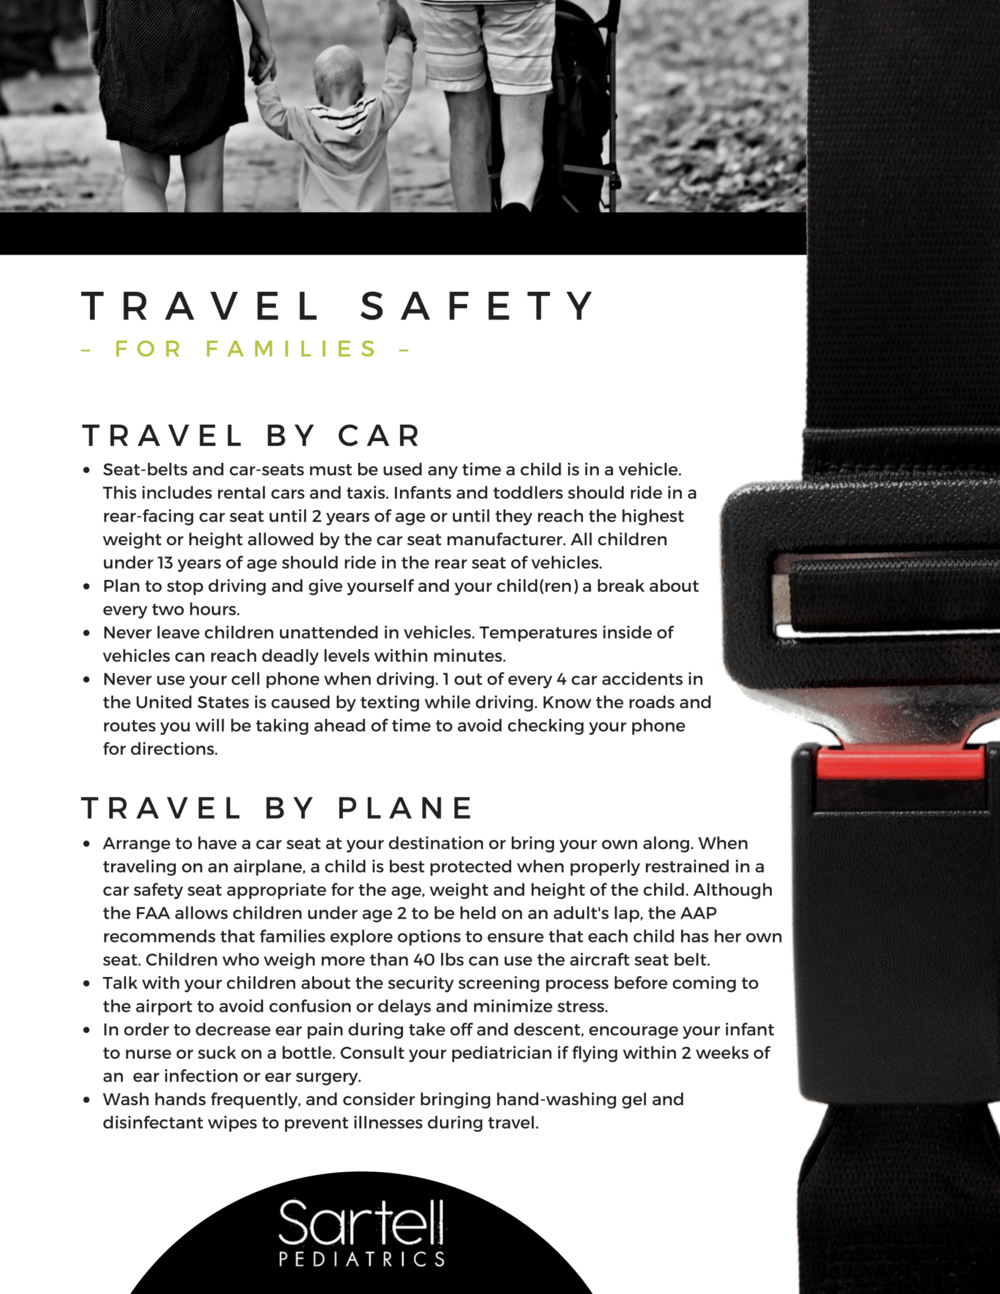 Travel Safety-1.png